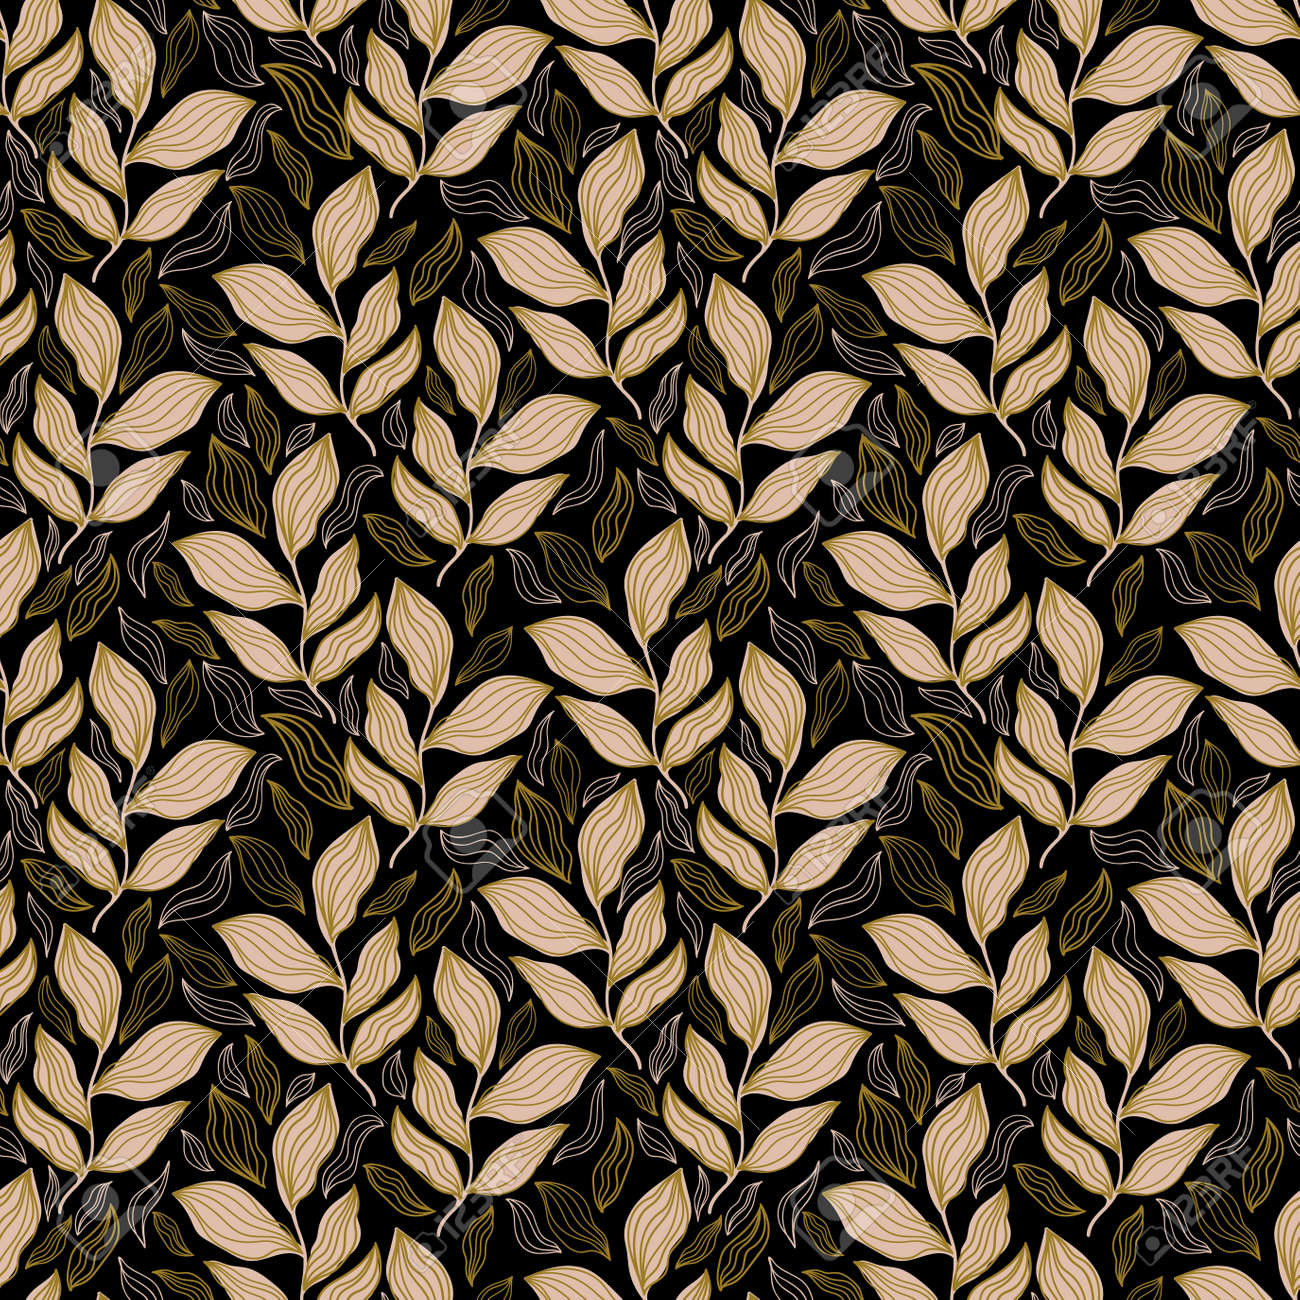 Seamless pattern floral abstract.Botanical vintage nature background.Print fashion textile. - 169556212